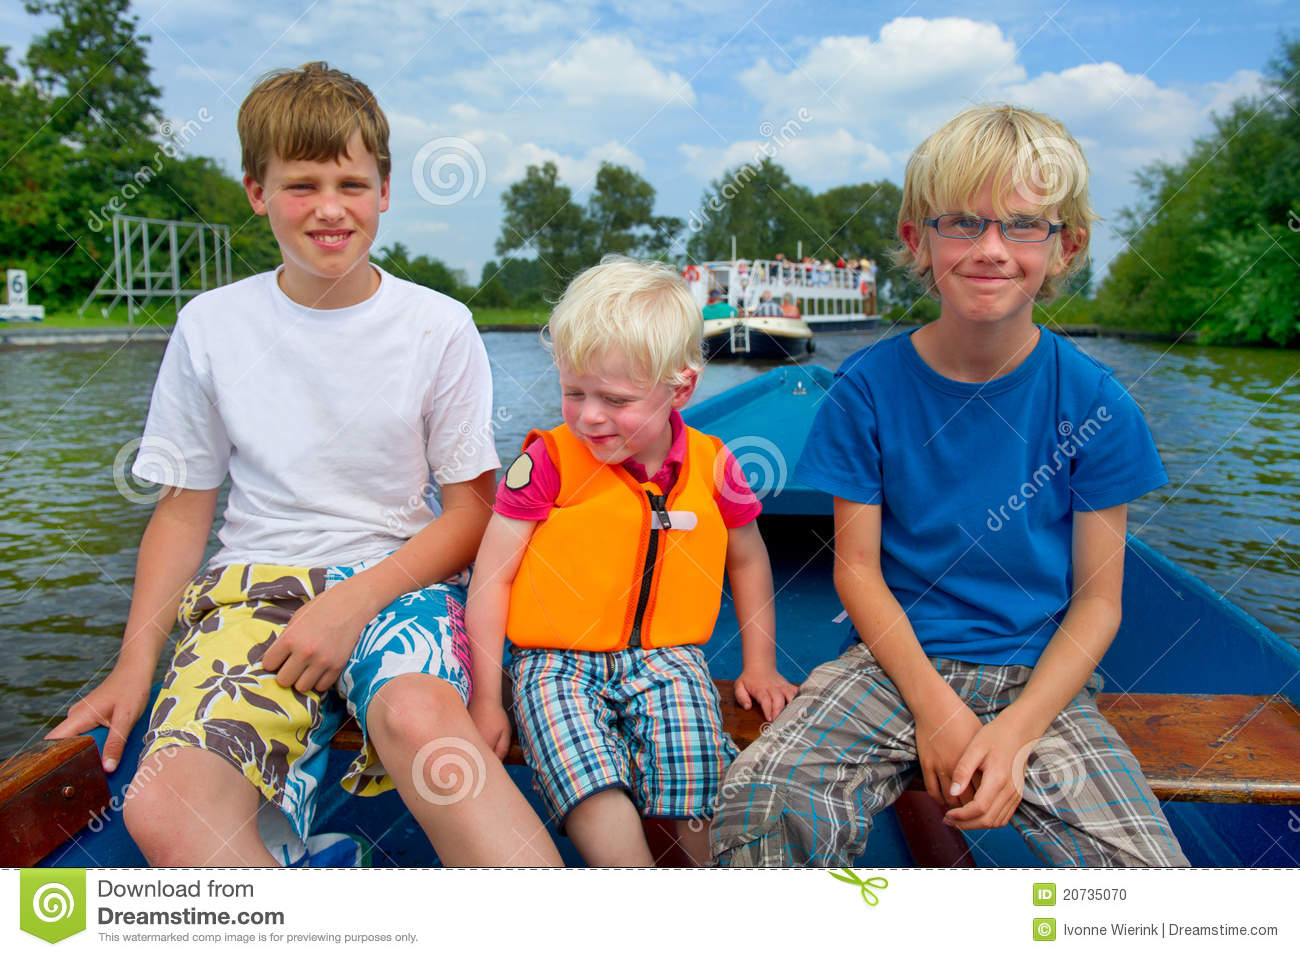 kids toy boats with Stock Photo Boys Boat Image20735070 on Playmobil Cruise Ship likewise Captain Redblood Pirate Set likewise Mag ic Aeroplane furthermore Boat furthermore 5338615 Mee Yellow Baby Ride Cycle Bike.